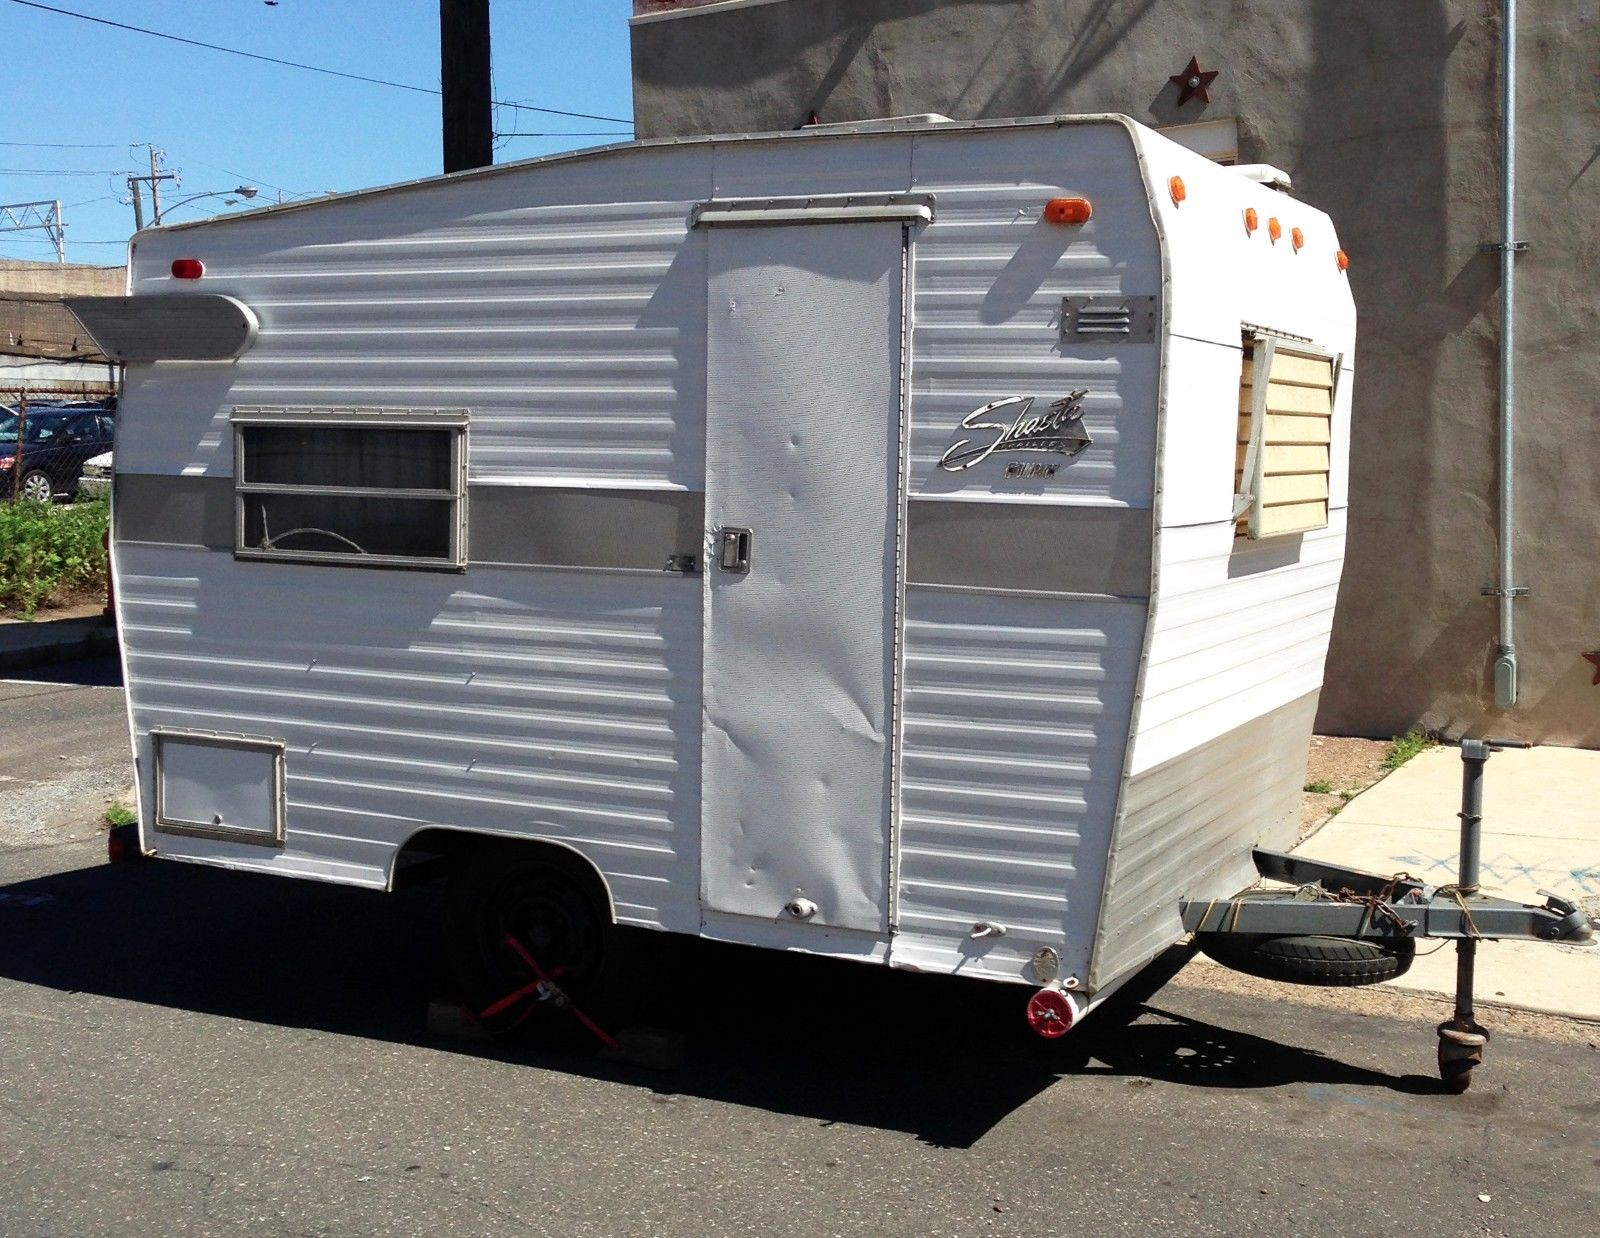 Vintage Rv 1971 Shasta Compact Camper For Sale